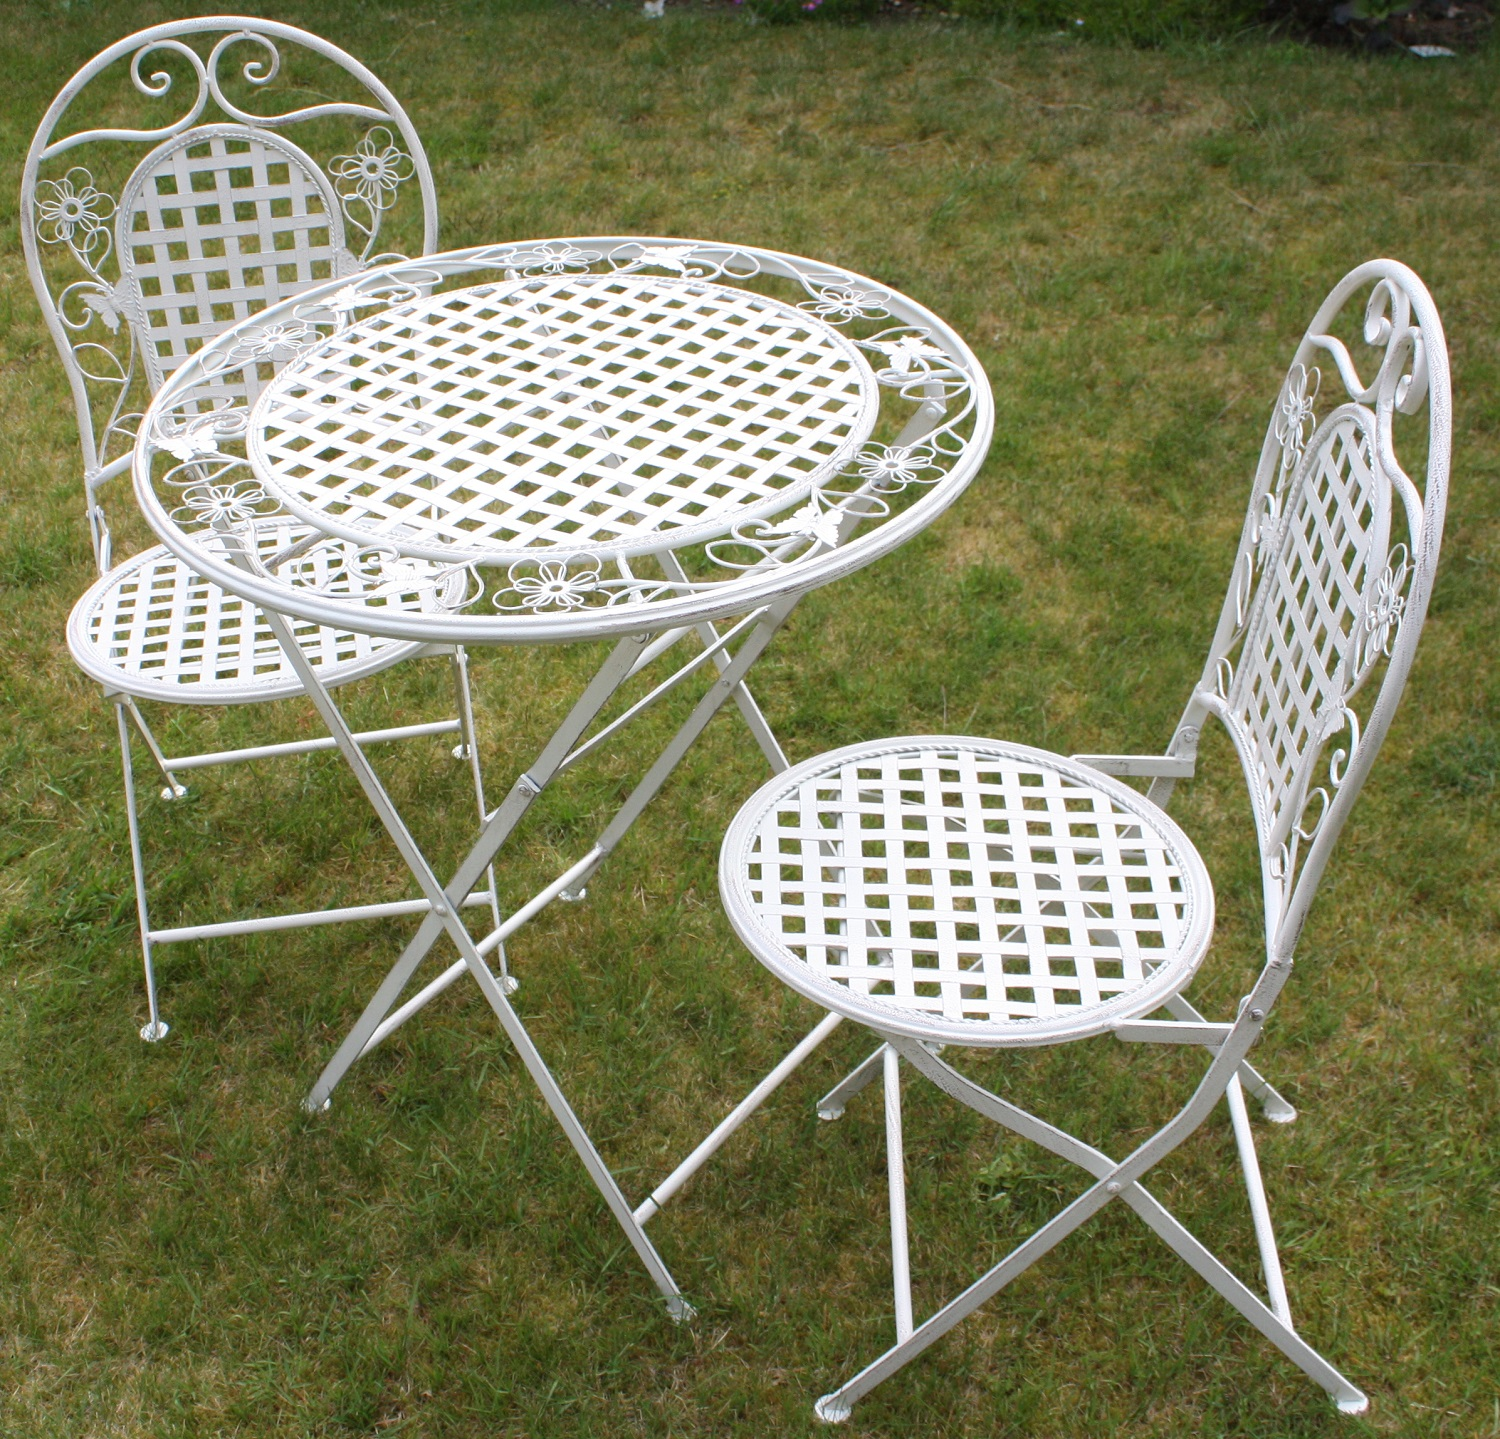 White Floral Outdoor Folding Metal Round Table And Chairs Garden Patio Furniture Ebay